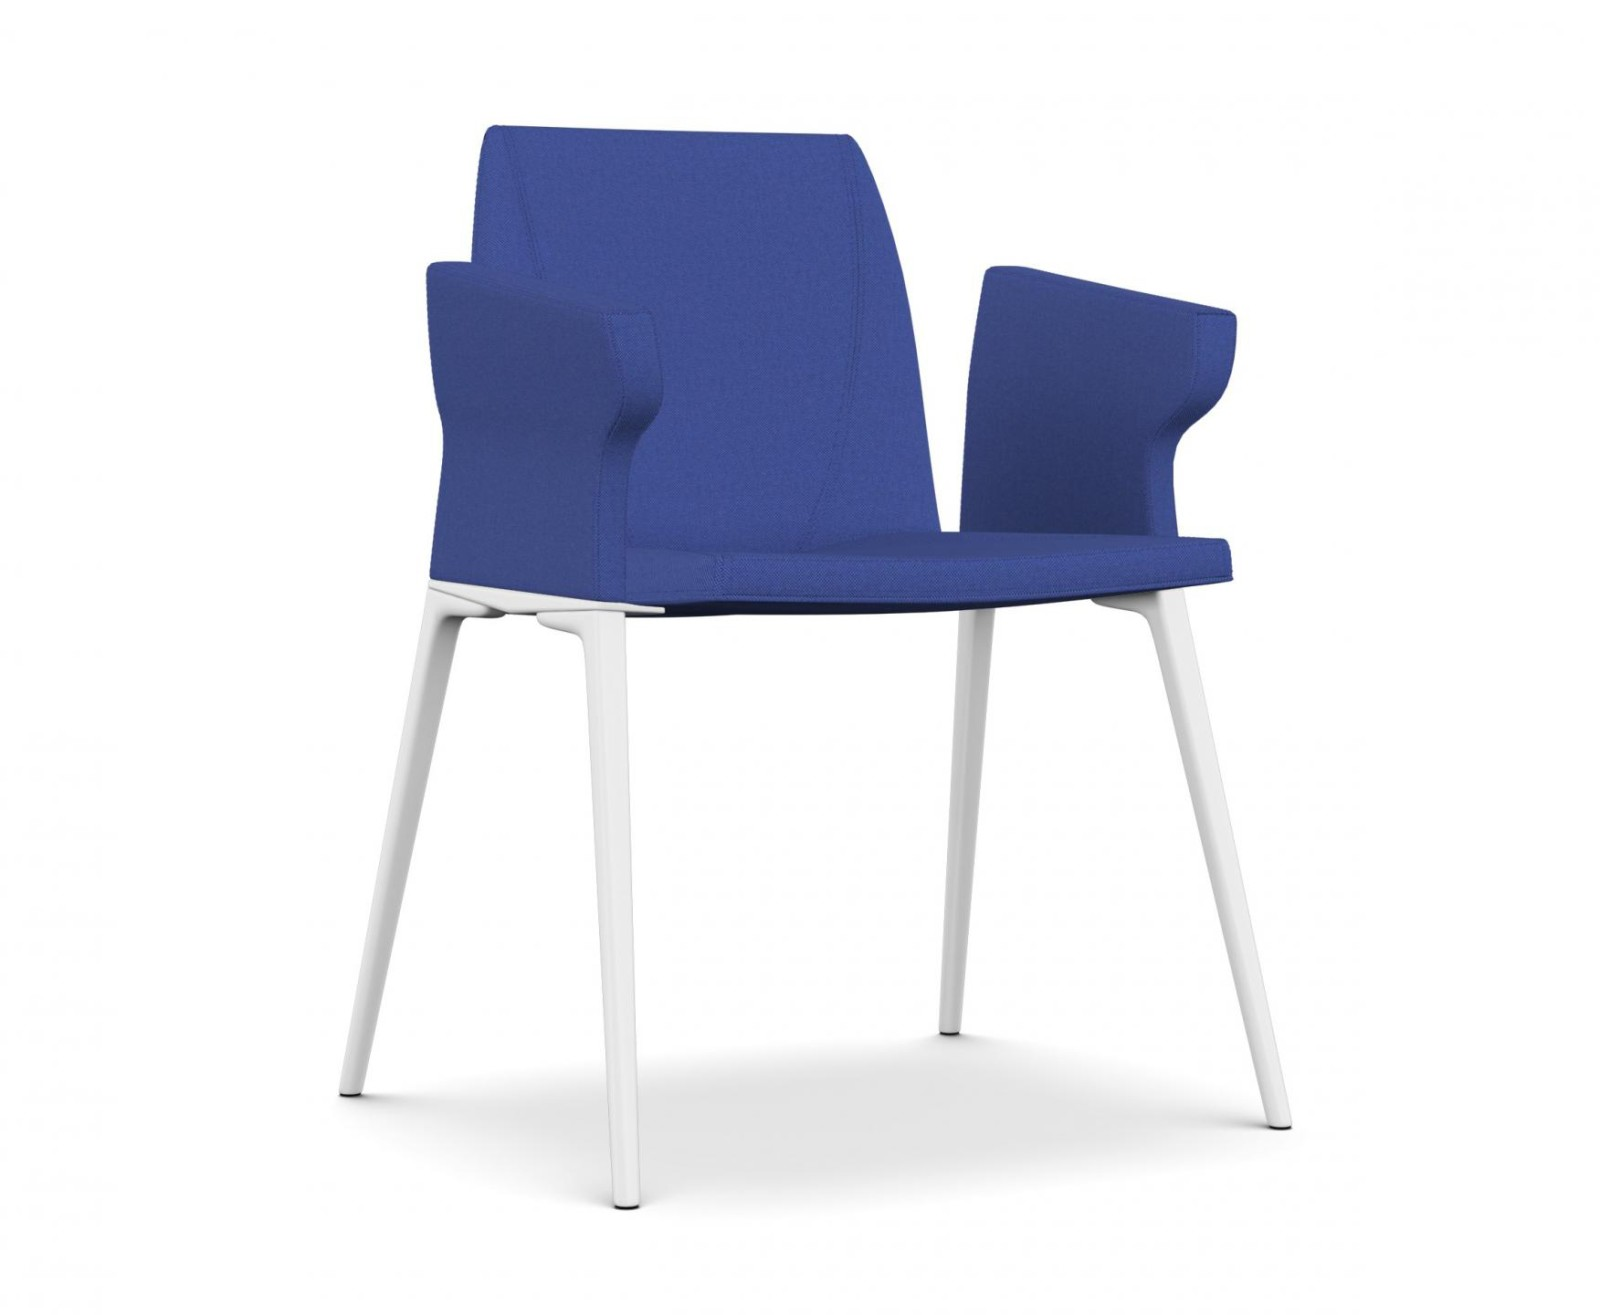 Plate 46 Chair with Armrests A7244 - Field 762 blue, White lacquered aluminium